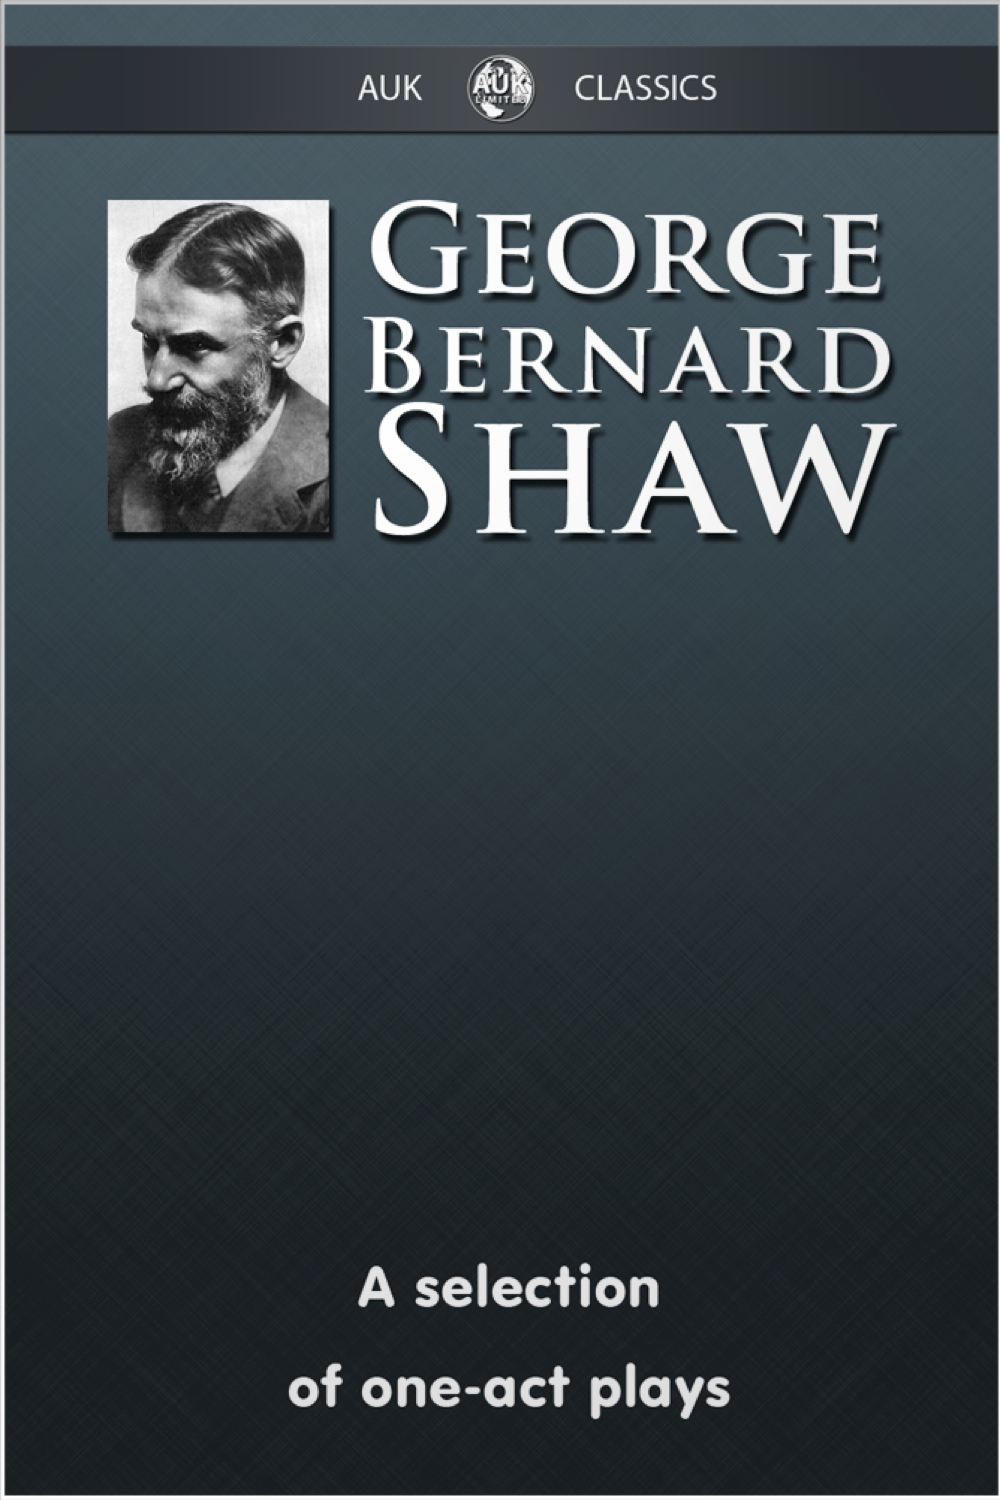 George Bernard Shaw - A Selection of One-Act Plays By: George Bernard Shaw